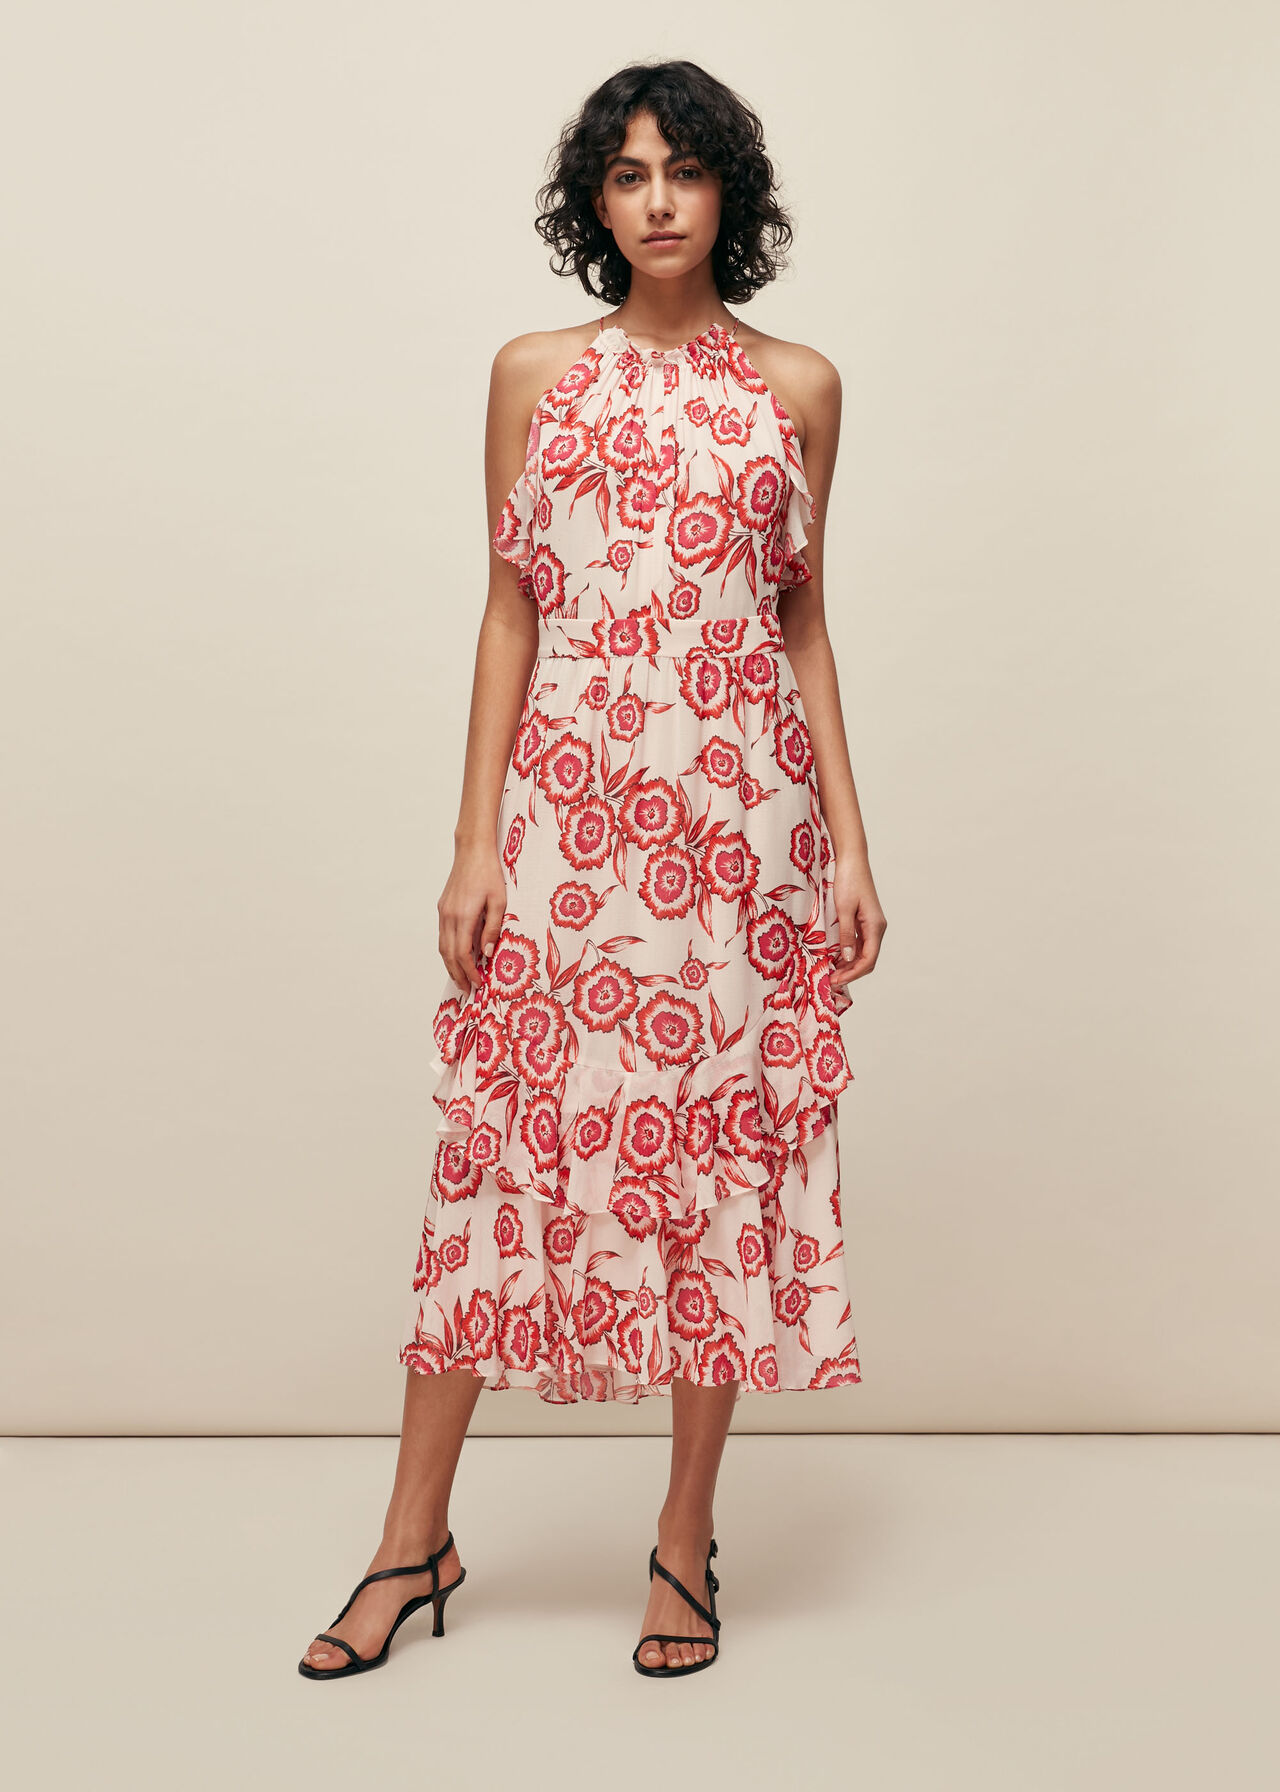 Devina Diagonal Floral Dress Pink/Multi